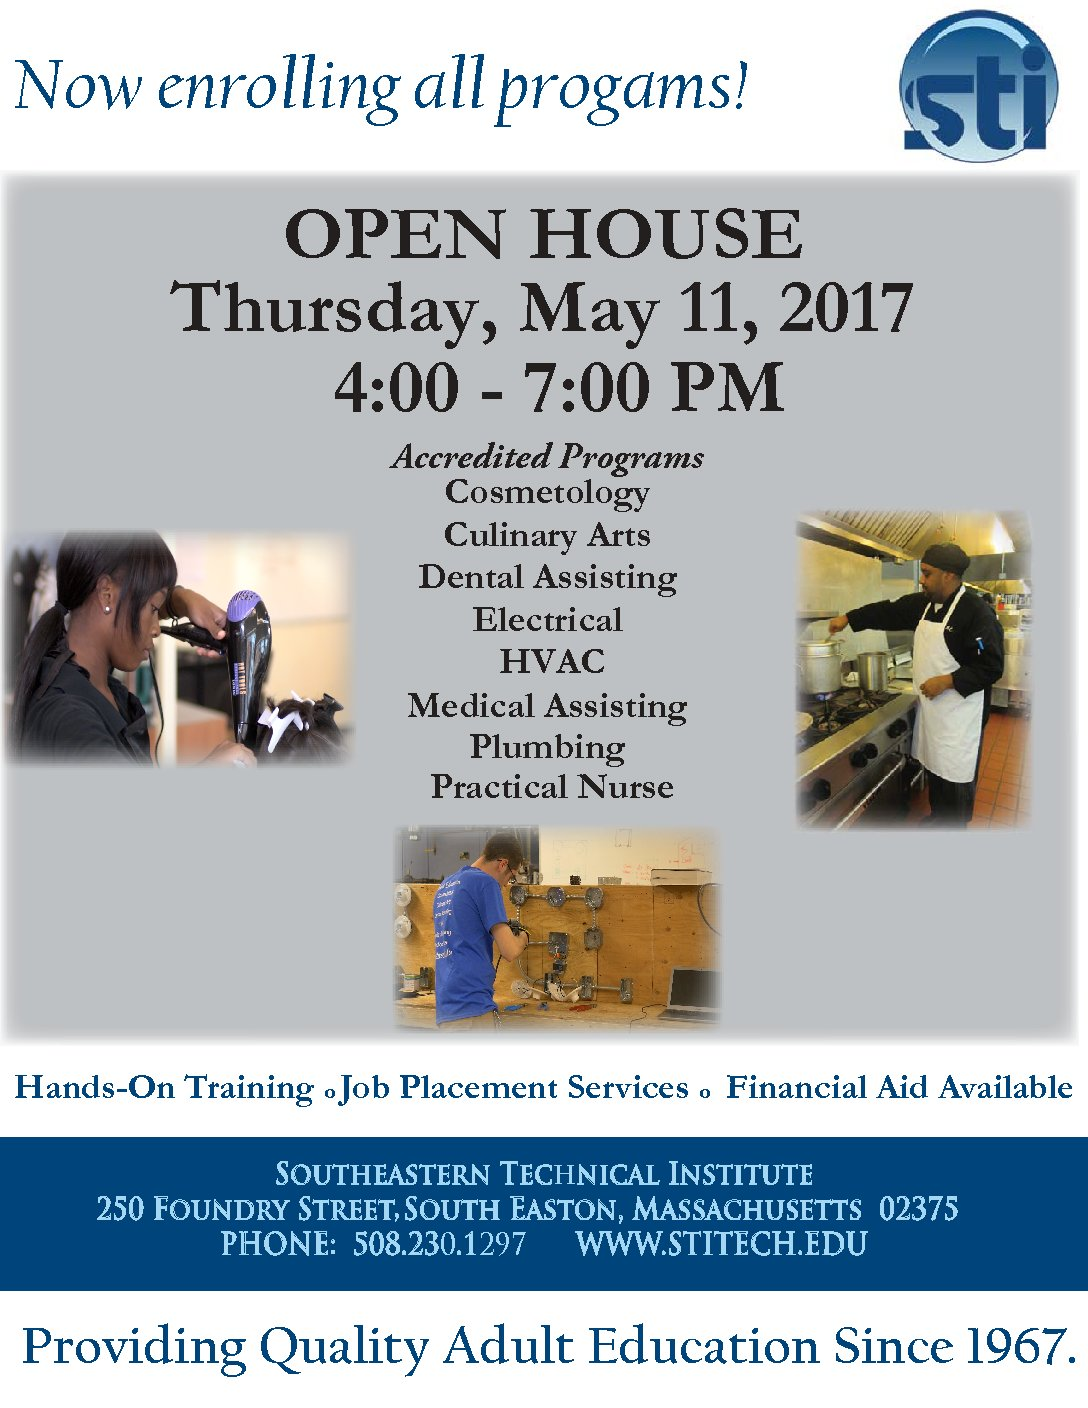 What to Expect from an STI Open House